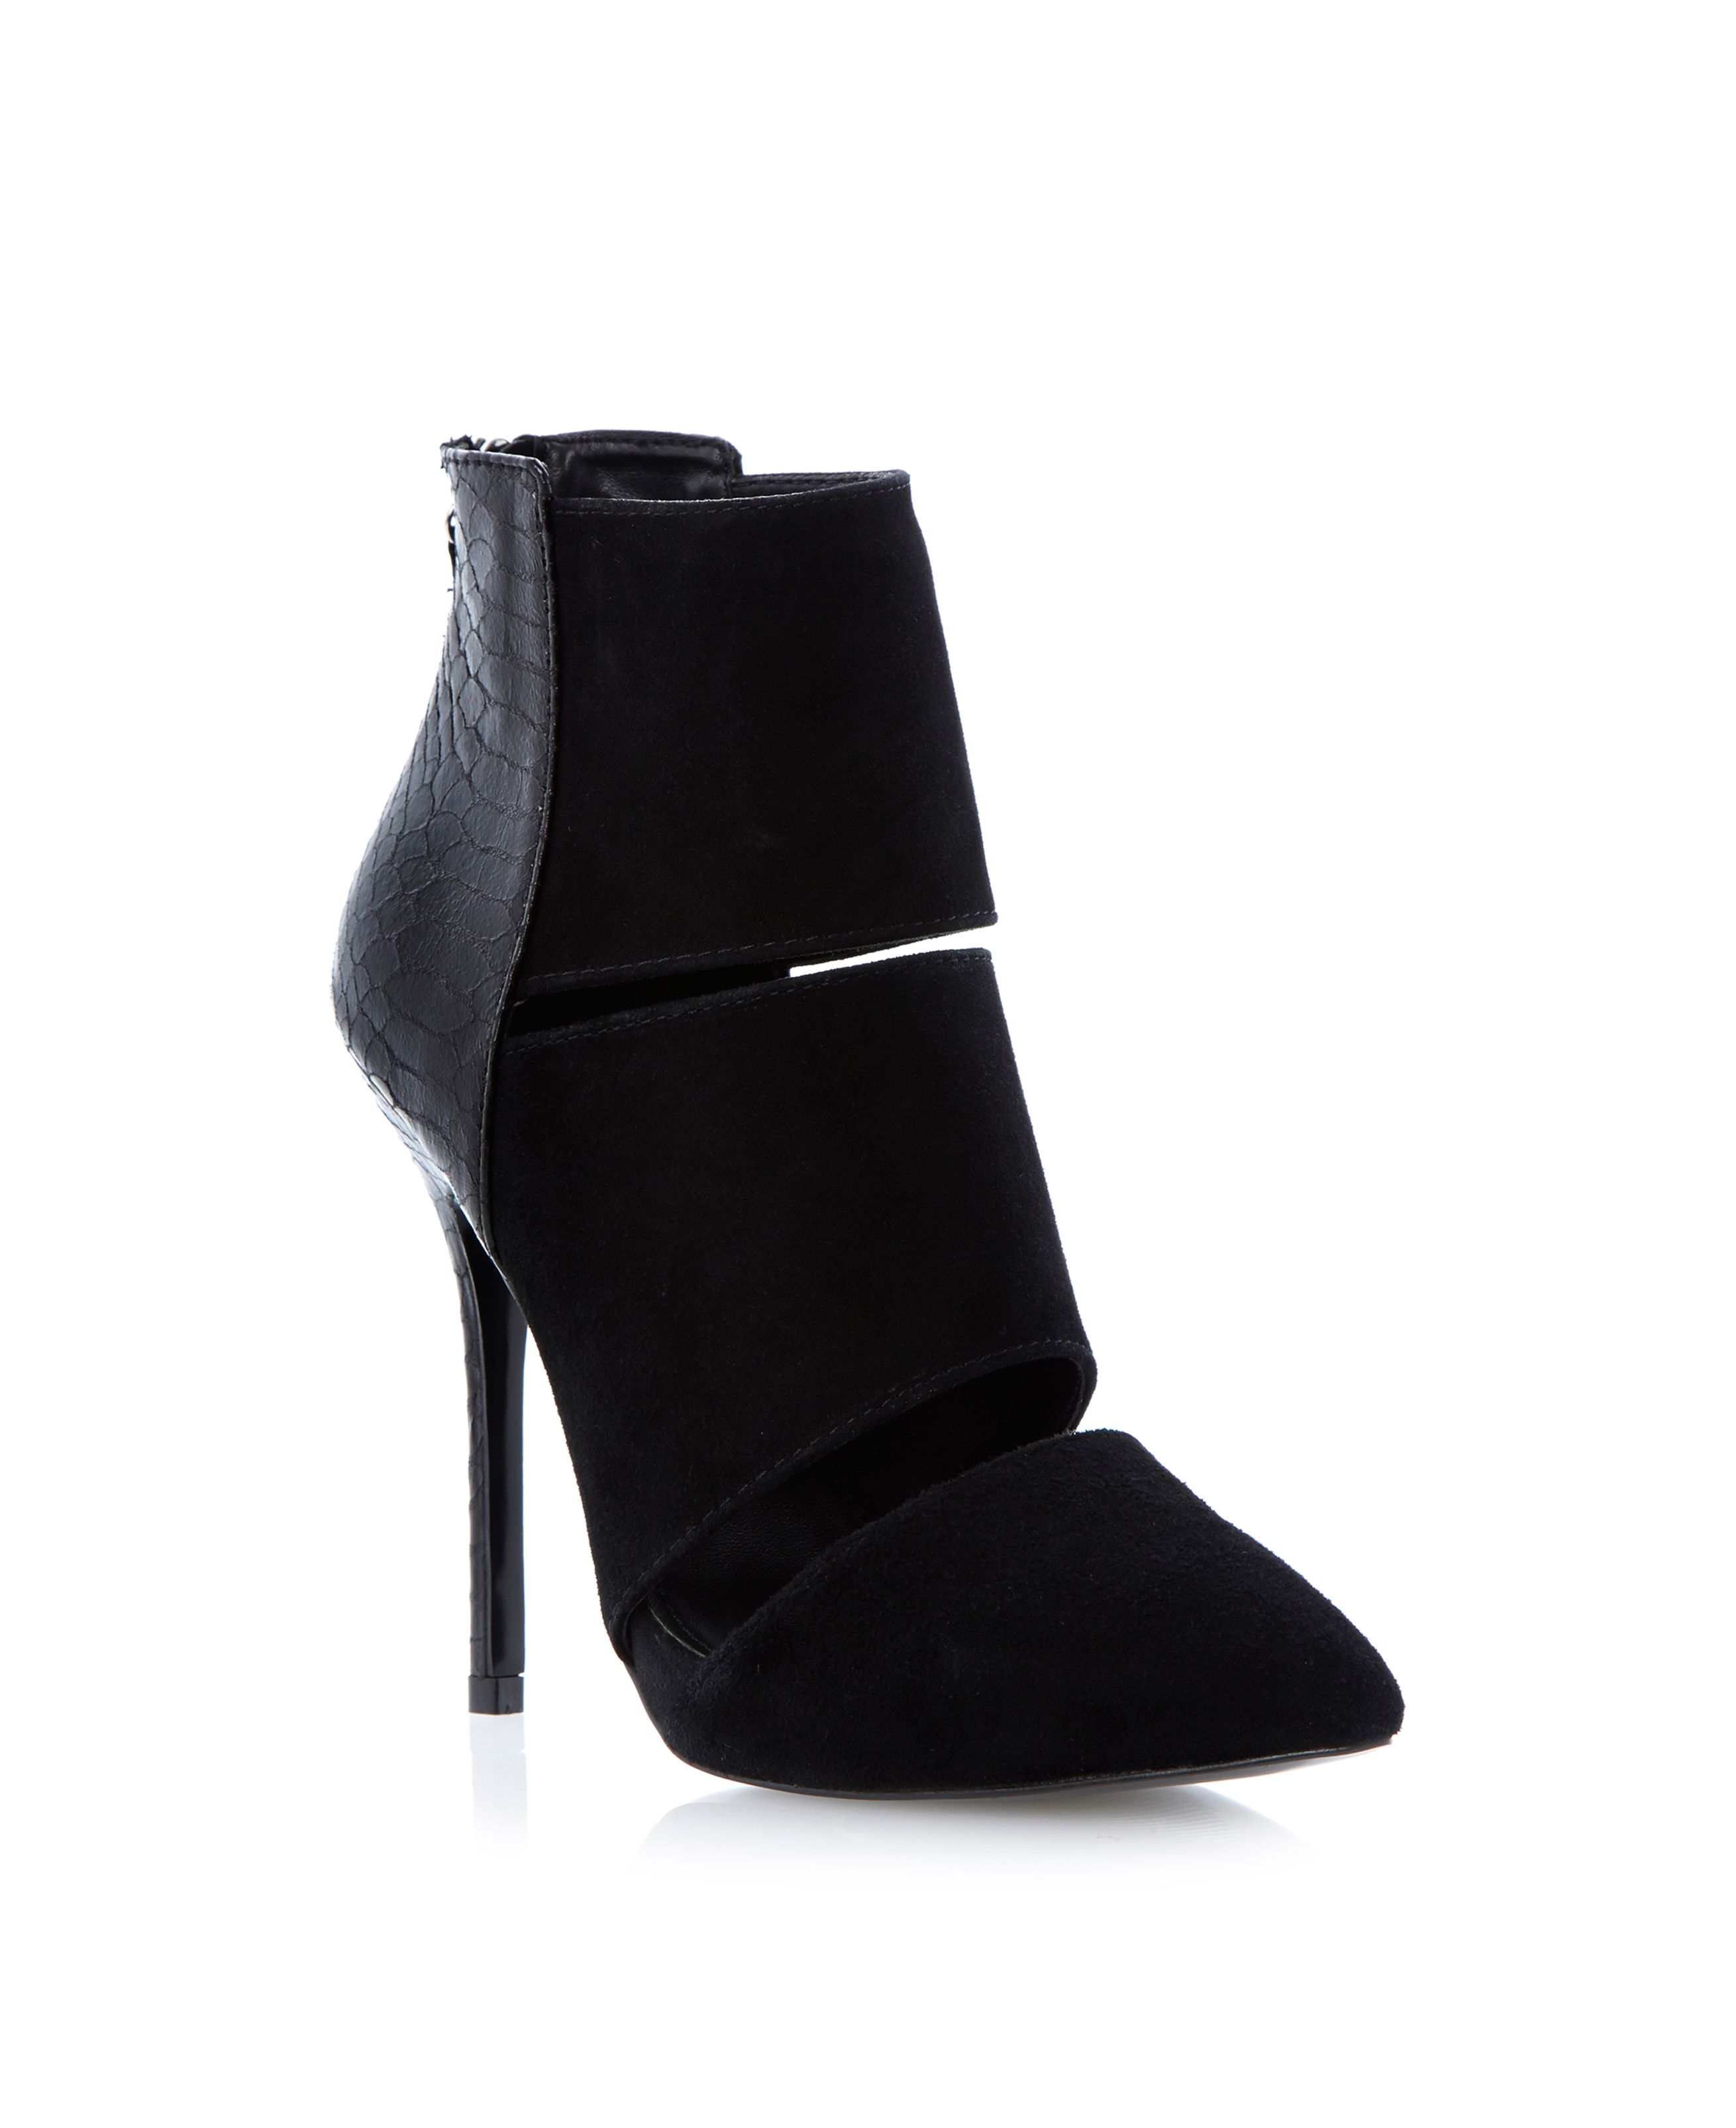 Tripplee suede and contrast stiletto heel booties